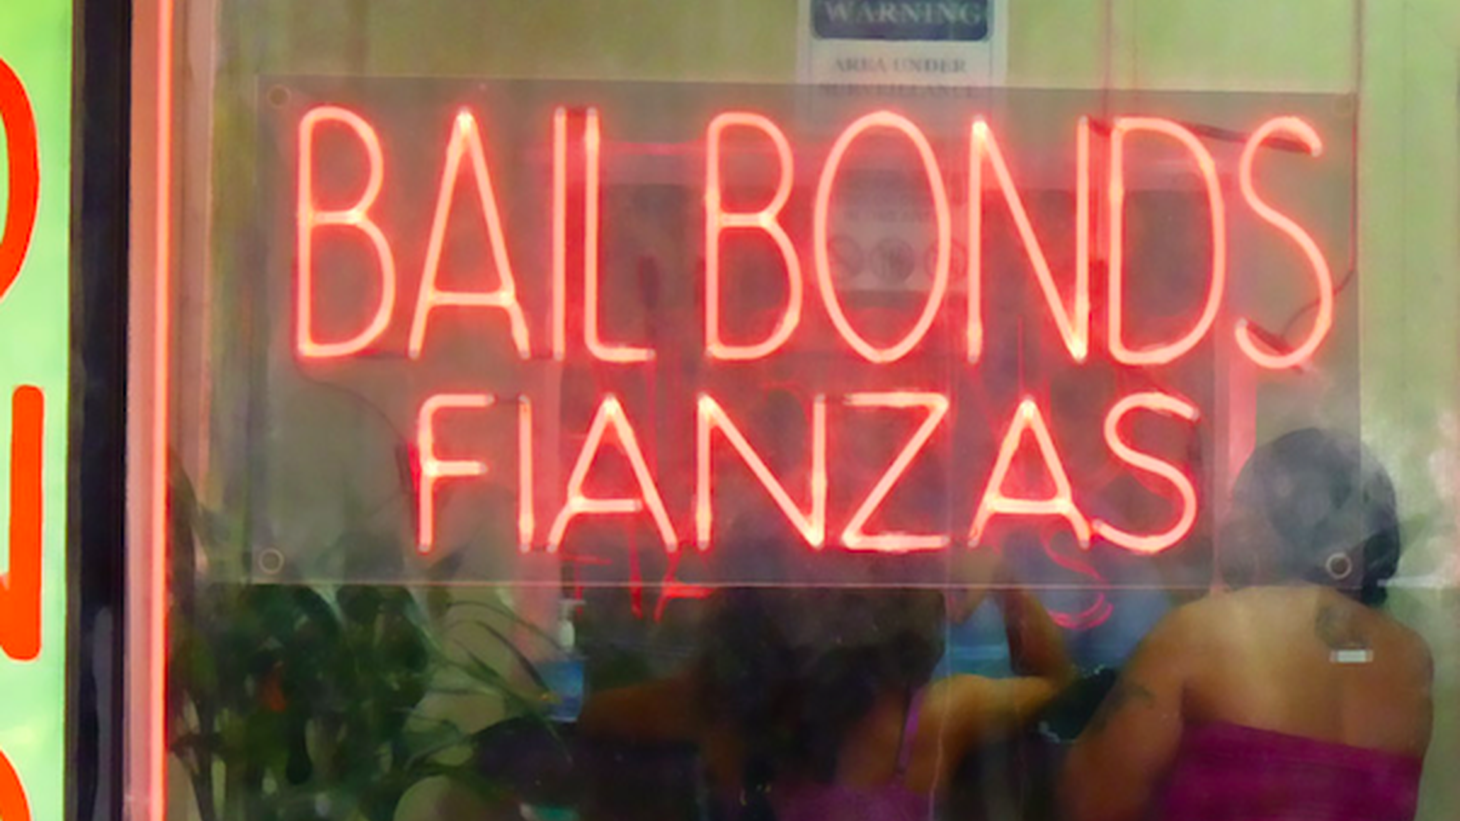 The state assembly passed a bill on Monday that would eliminate money bail -- that means no more cash or bonds to get out of jail while awaiting trial. Low level offenders would be released.